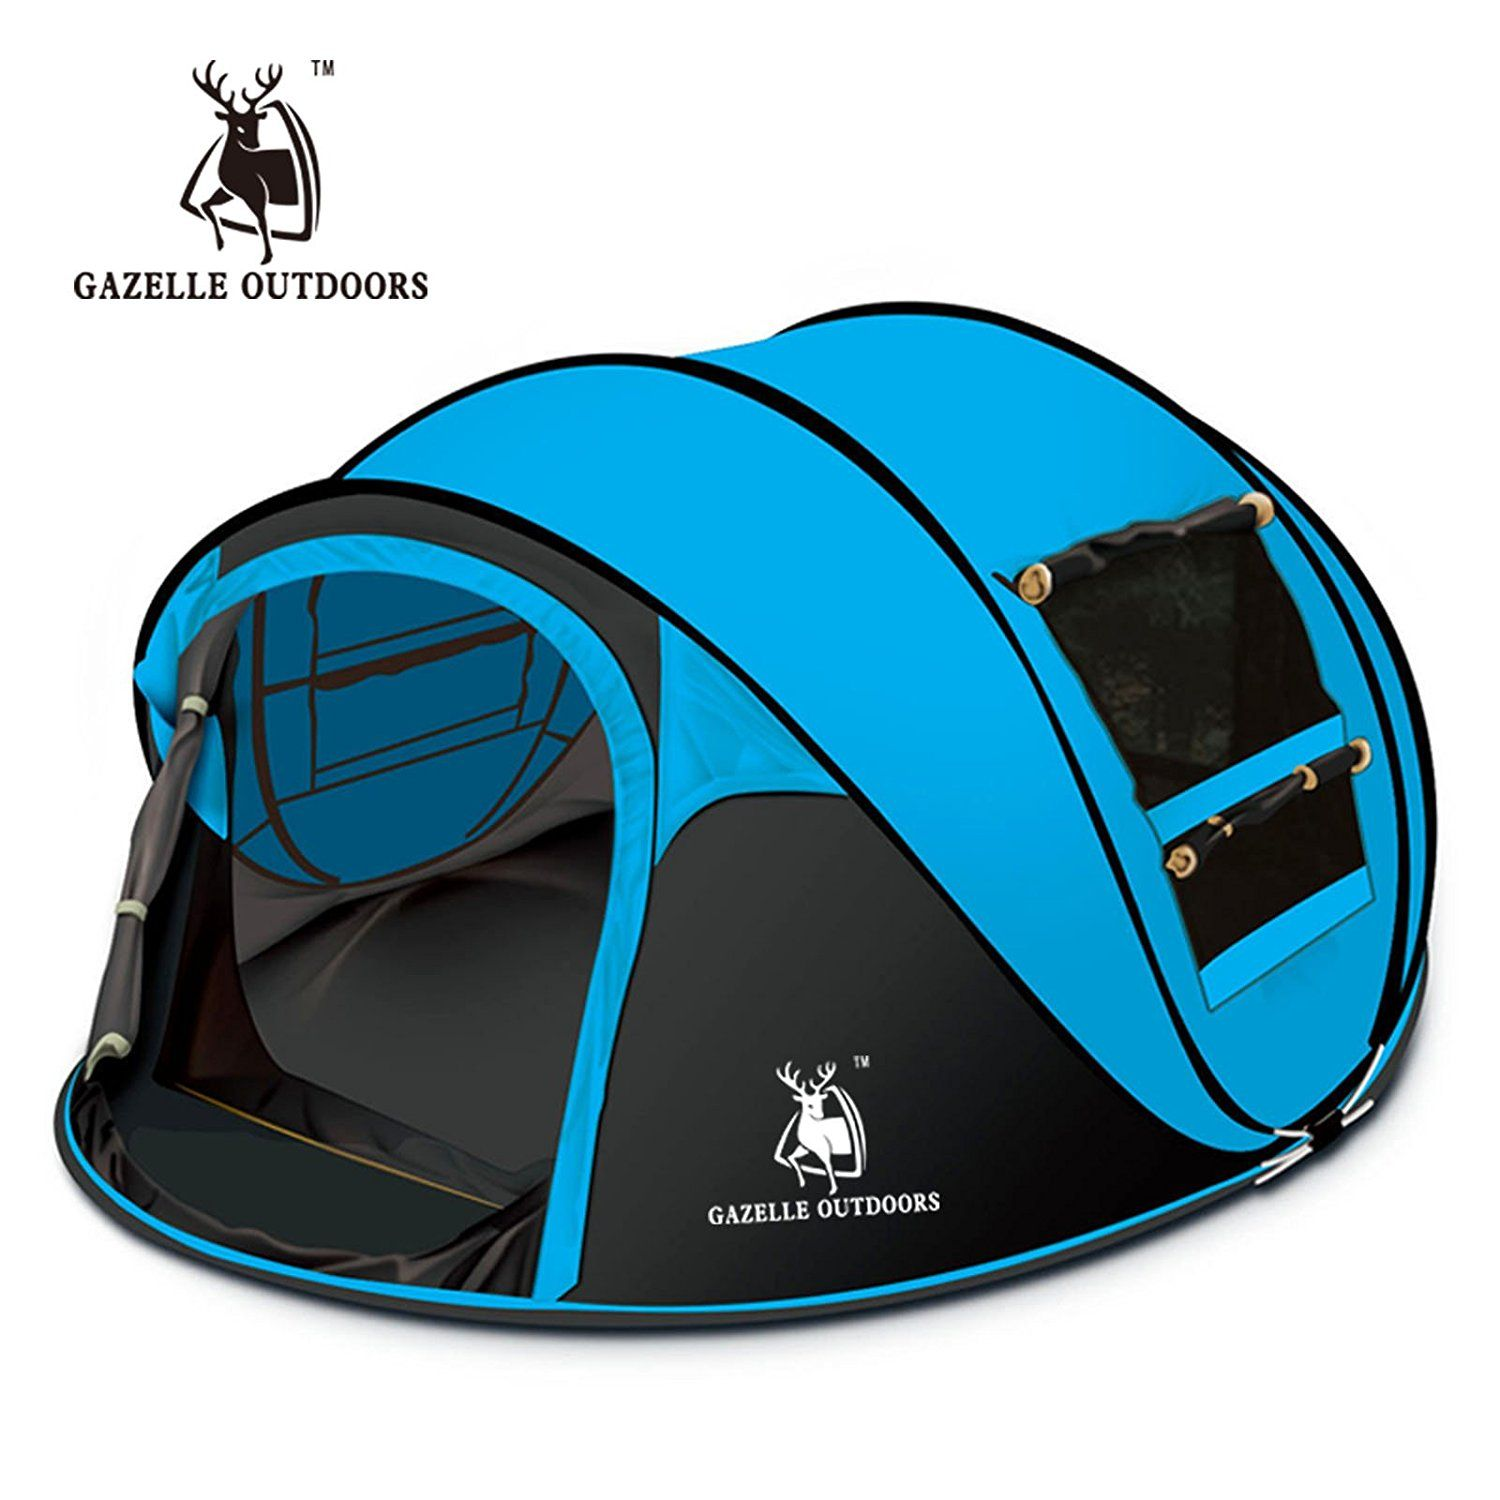 Gazelle Outdoors C&ing Hiking Large Instant Pop Up Tent - Double-Doors Two Windows -  sc 1 st  Pinterest & Gazelle Outdoors Camping Hiking Large Instant Pop Up Tent - Double ...